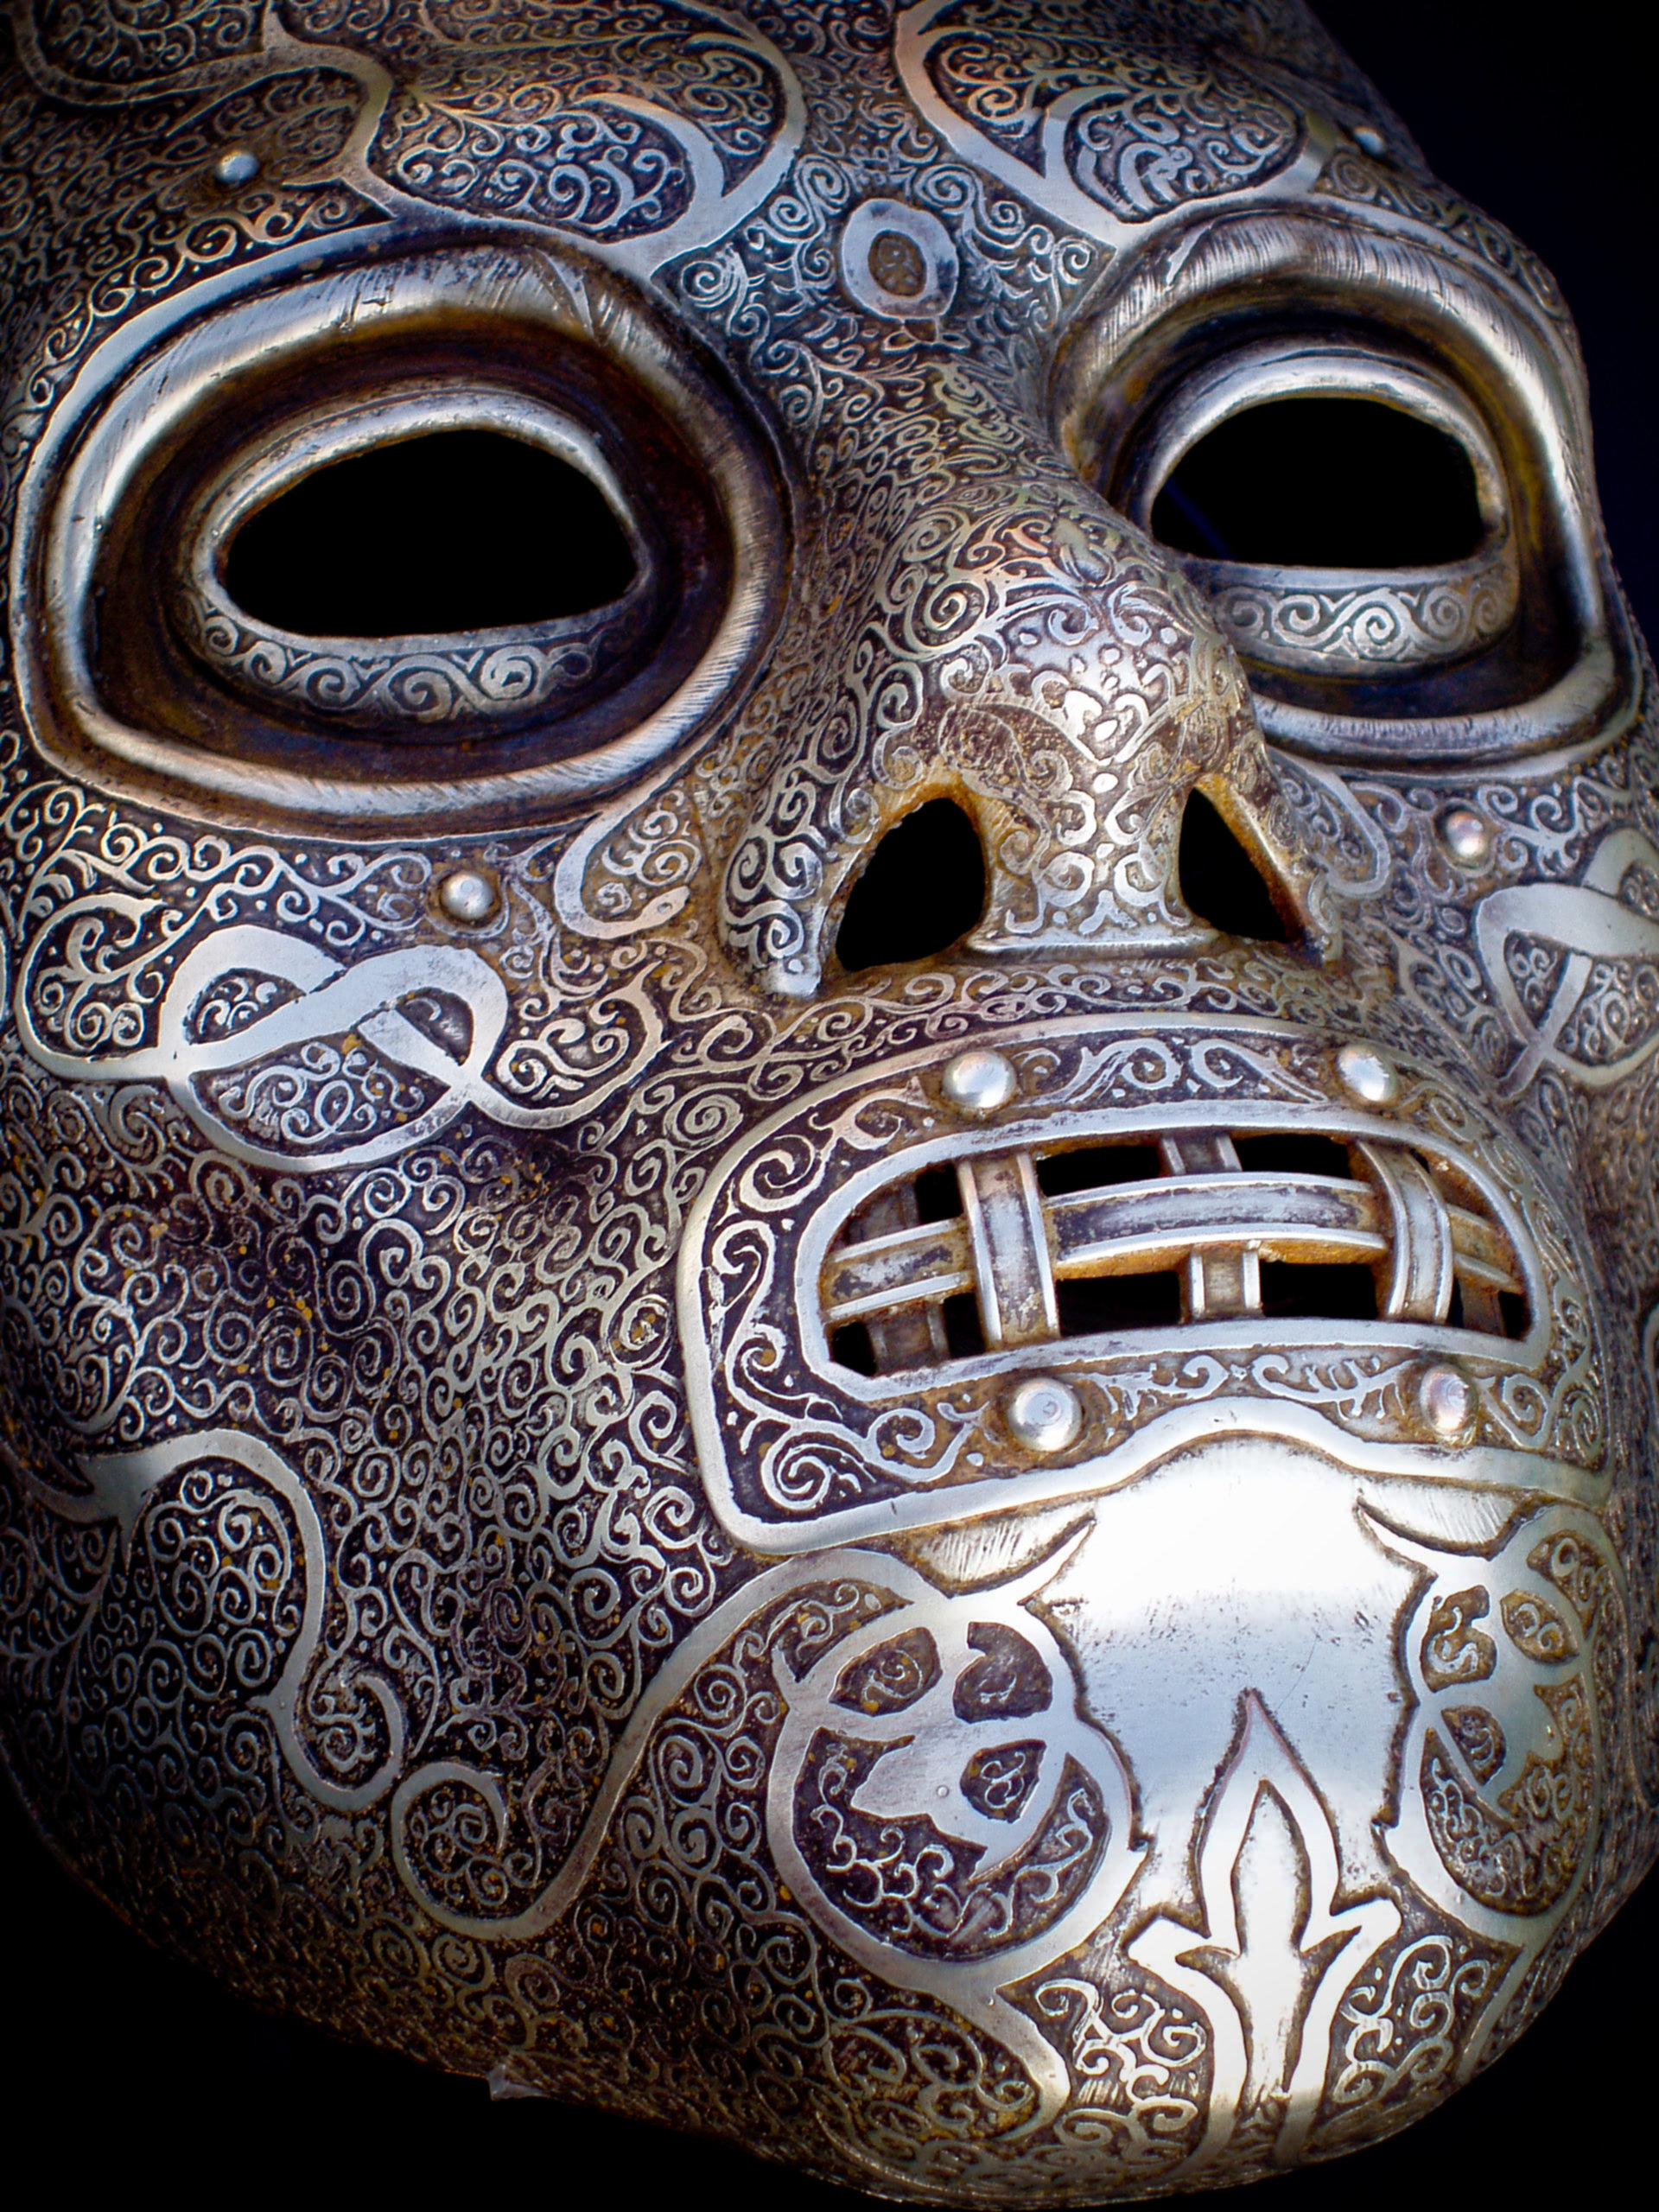 Death Eater Masks And Their Owners : death, eater, masks, their, owners, Behind, Scenes:, Designing, Deathly, Masks, Wizarding, World